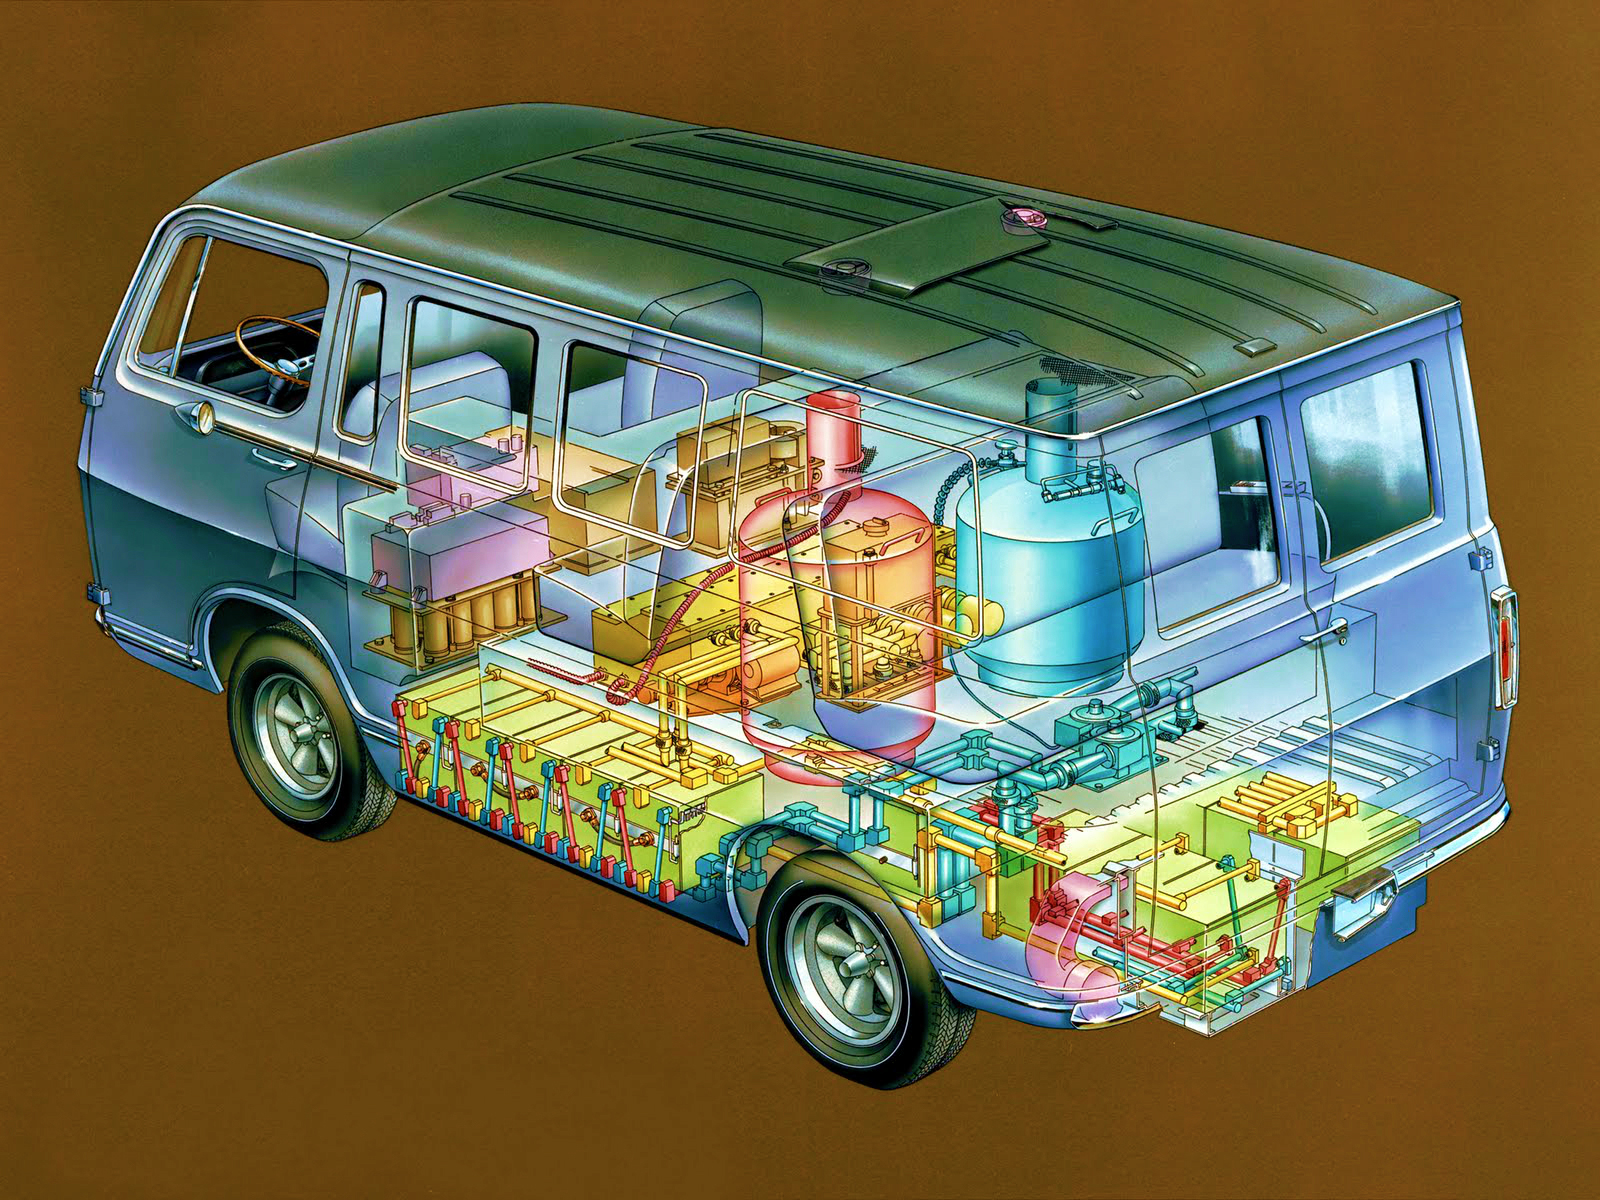 The General Motors Electrovan celebrates its 50th anniversary as the world's first hydrogen-power fuel cell vehicle in October. It was the first transfer of fuel cell technology from President John F. Kennedy's challenge to NASA to safely land a man on the moon by the end of the 1960s. This technical art shows the Electrovan's interior crammed with fuel cell componentry that left room for only a driver and two passengers.